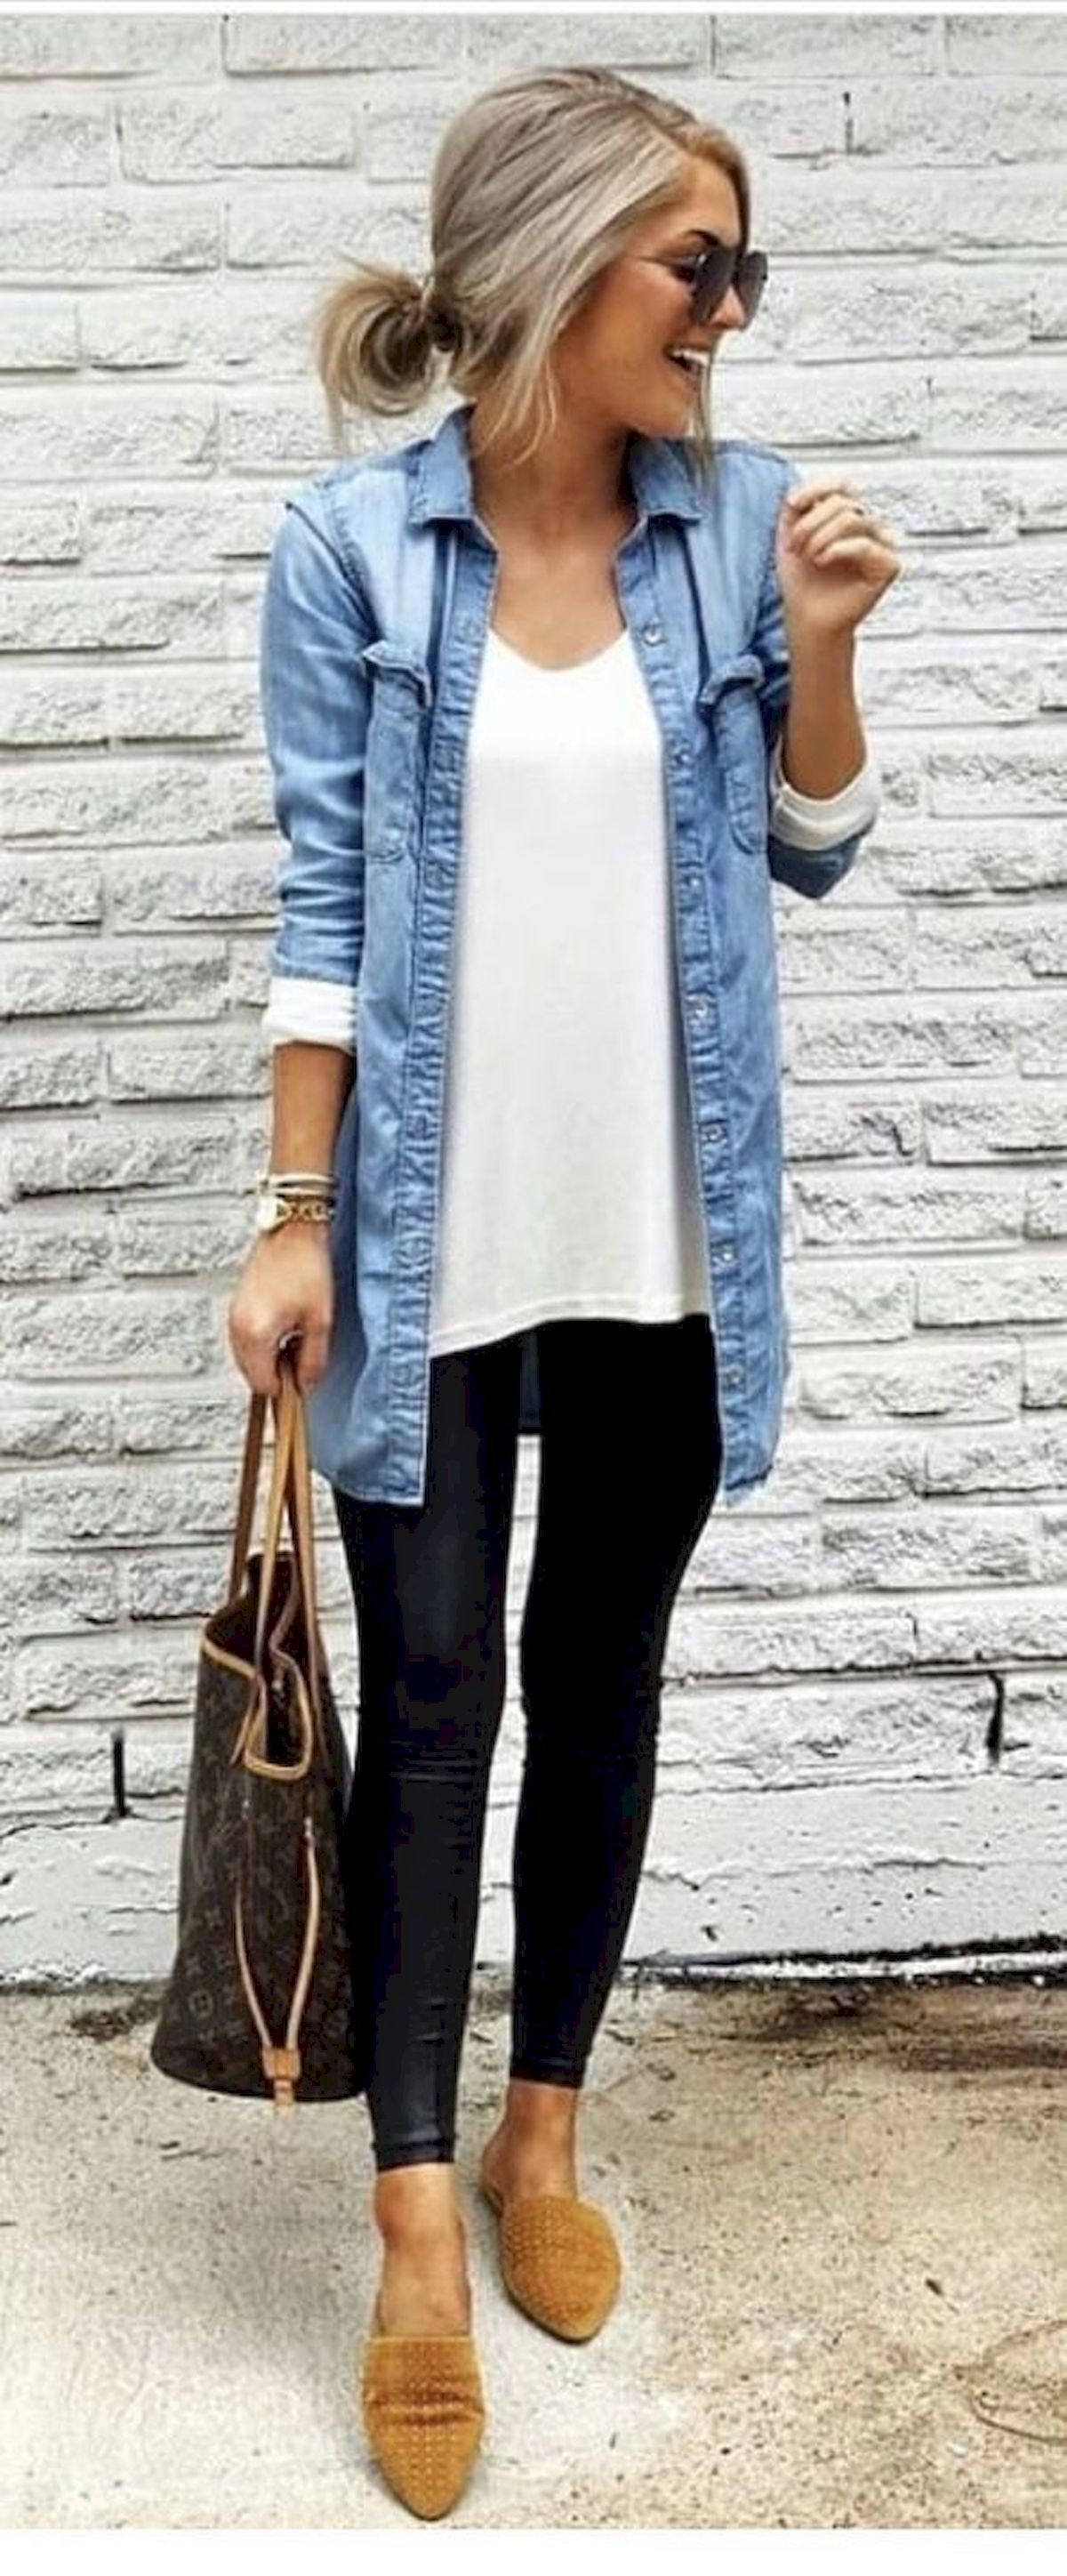 Pin by Micki Conley on Paznokcie  Spring outfits casual, Clothes